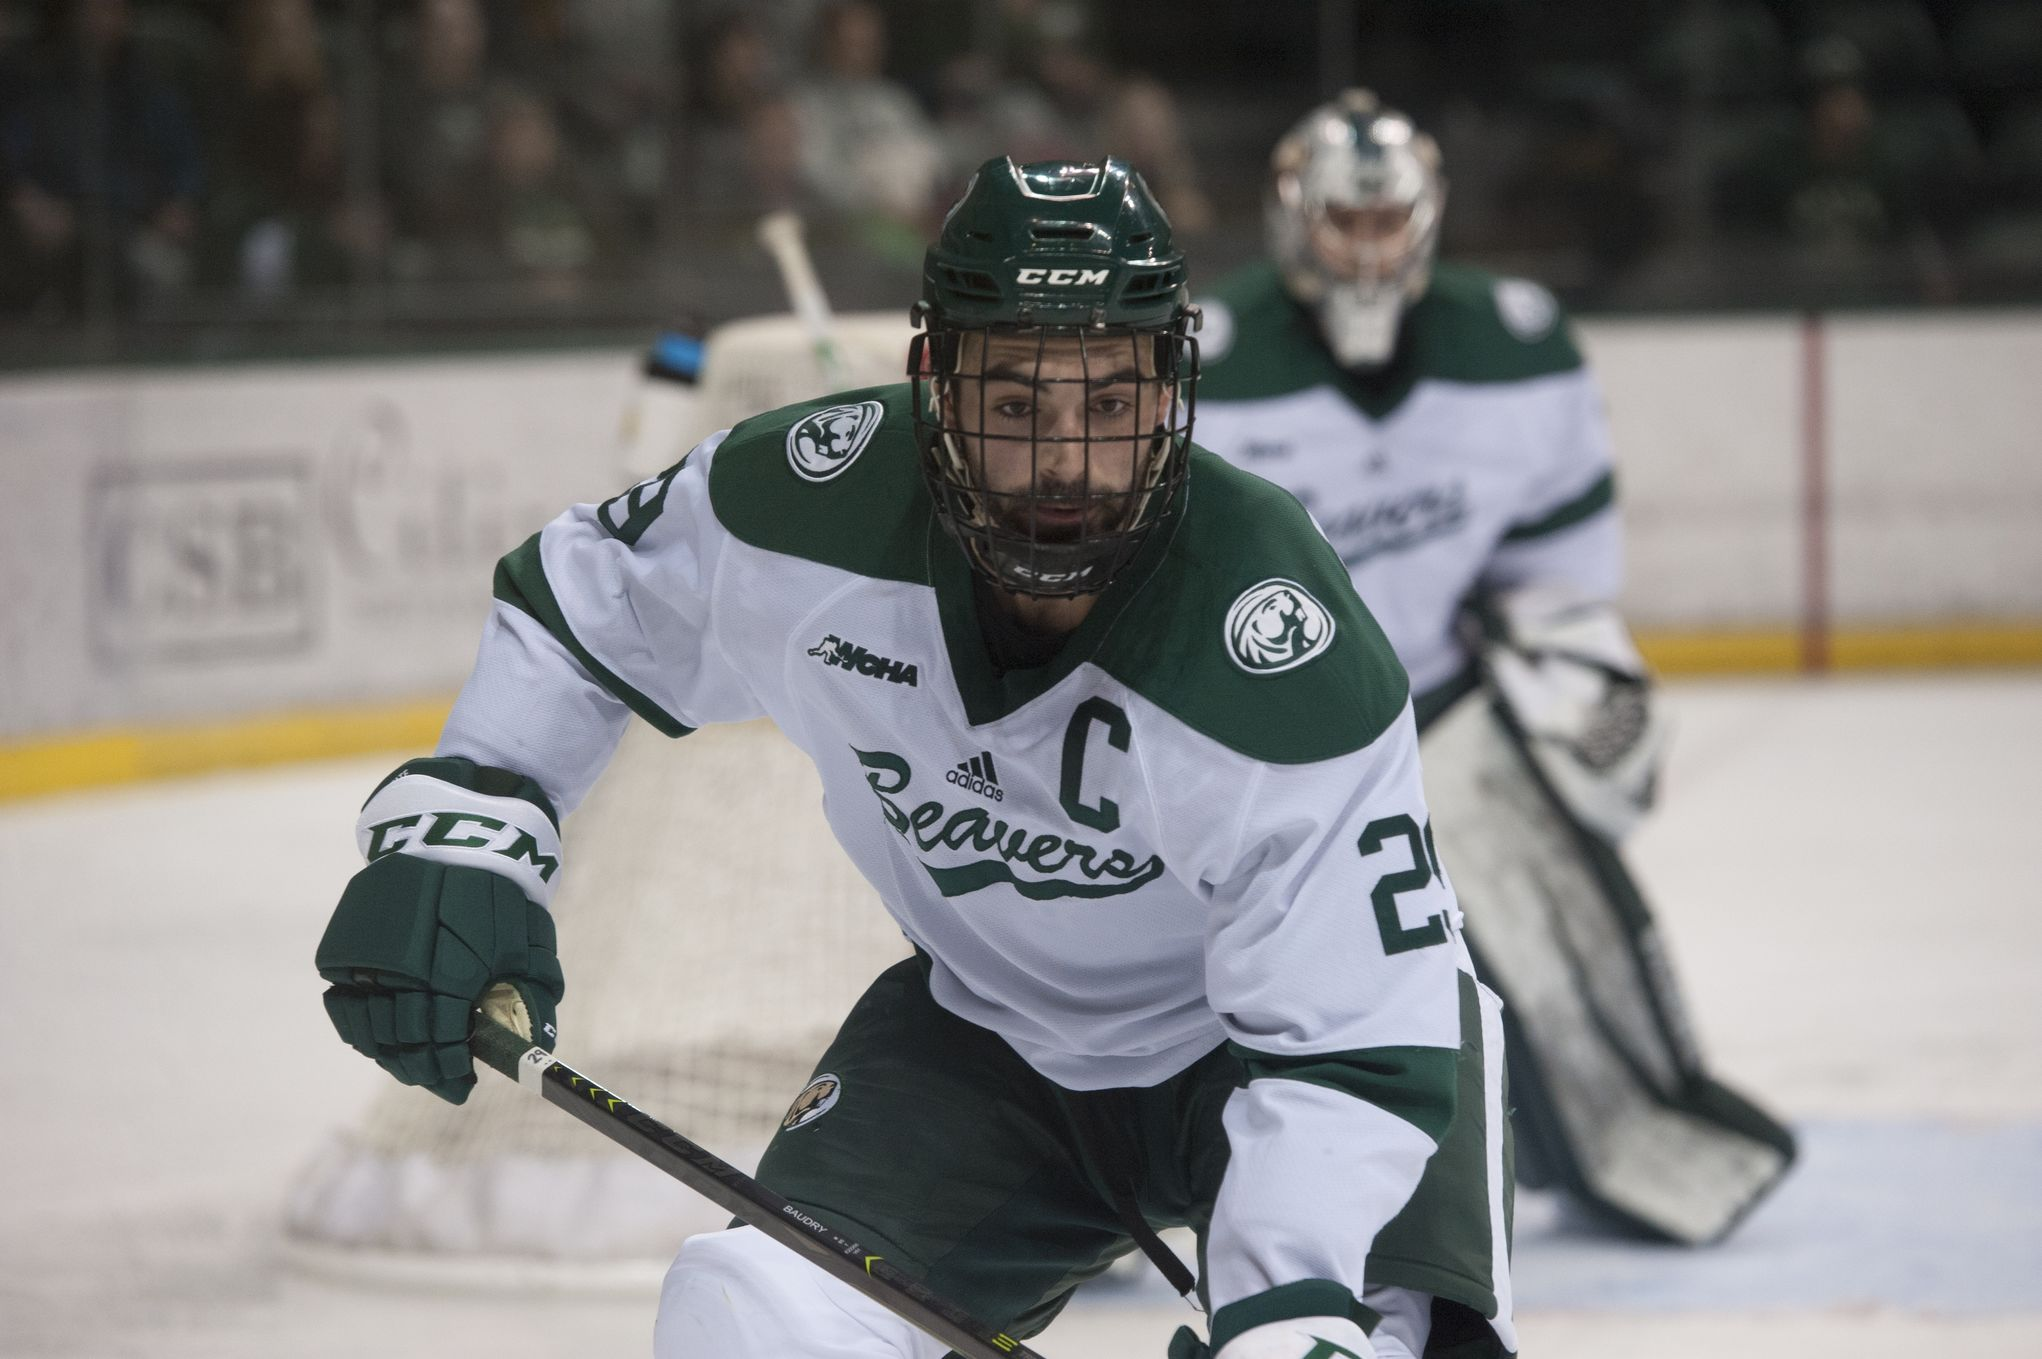 La Broquerie's Justin Baudry, captain of the Bemidji State Beavers this past season, has signed a one-year contract with the AHL's Rochester Americans.